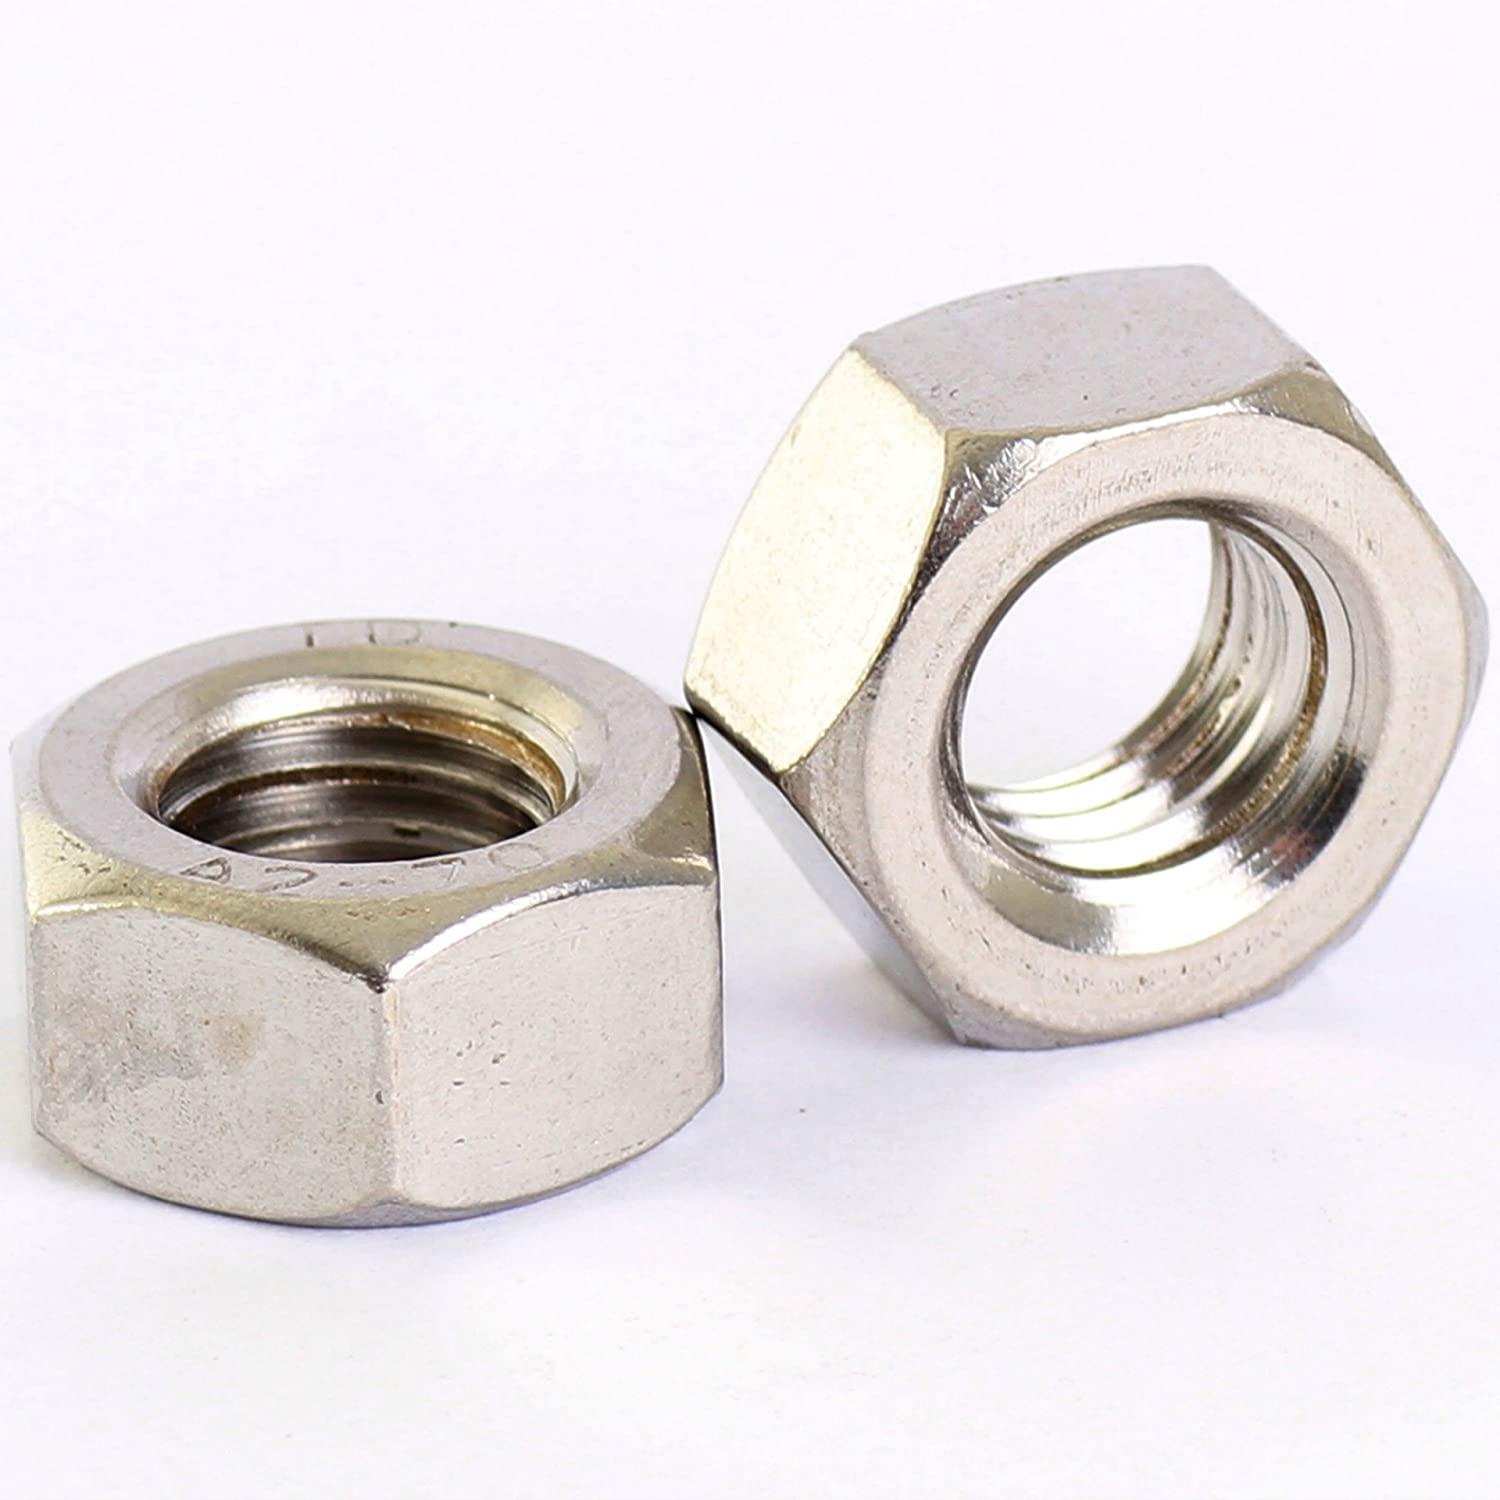 Bolt Base A2 Stainless Steel Hex Full Nuts M10 X 1.50mm Pitch - 10